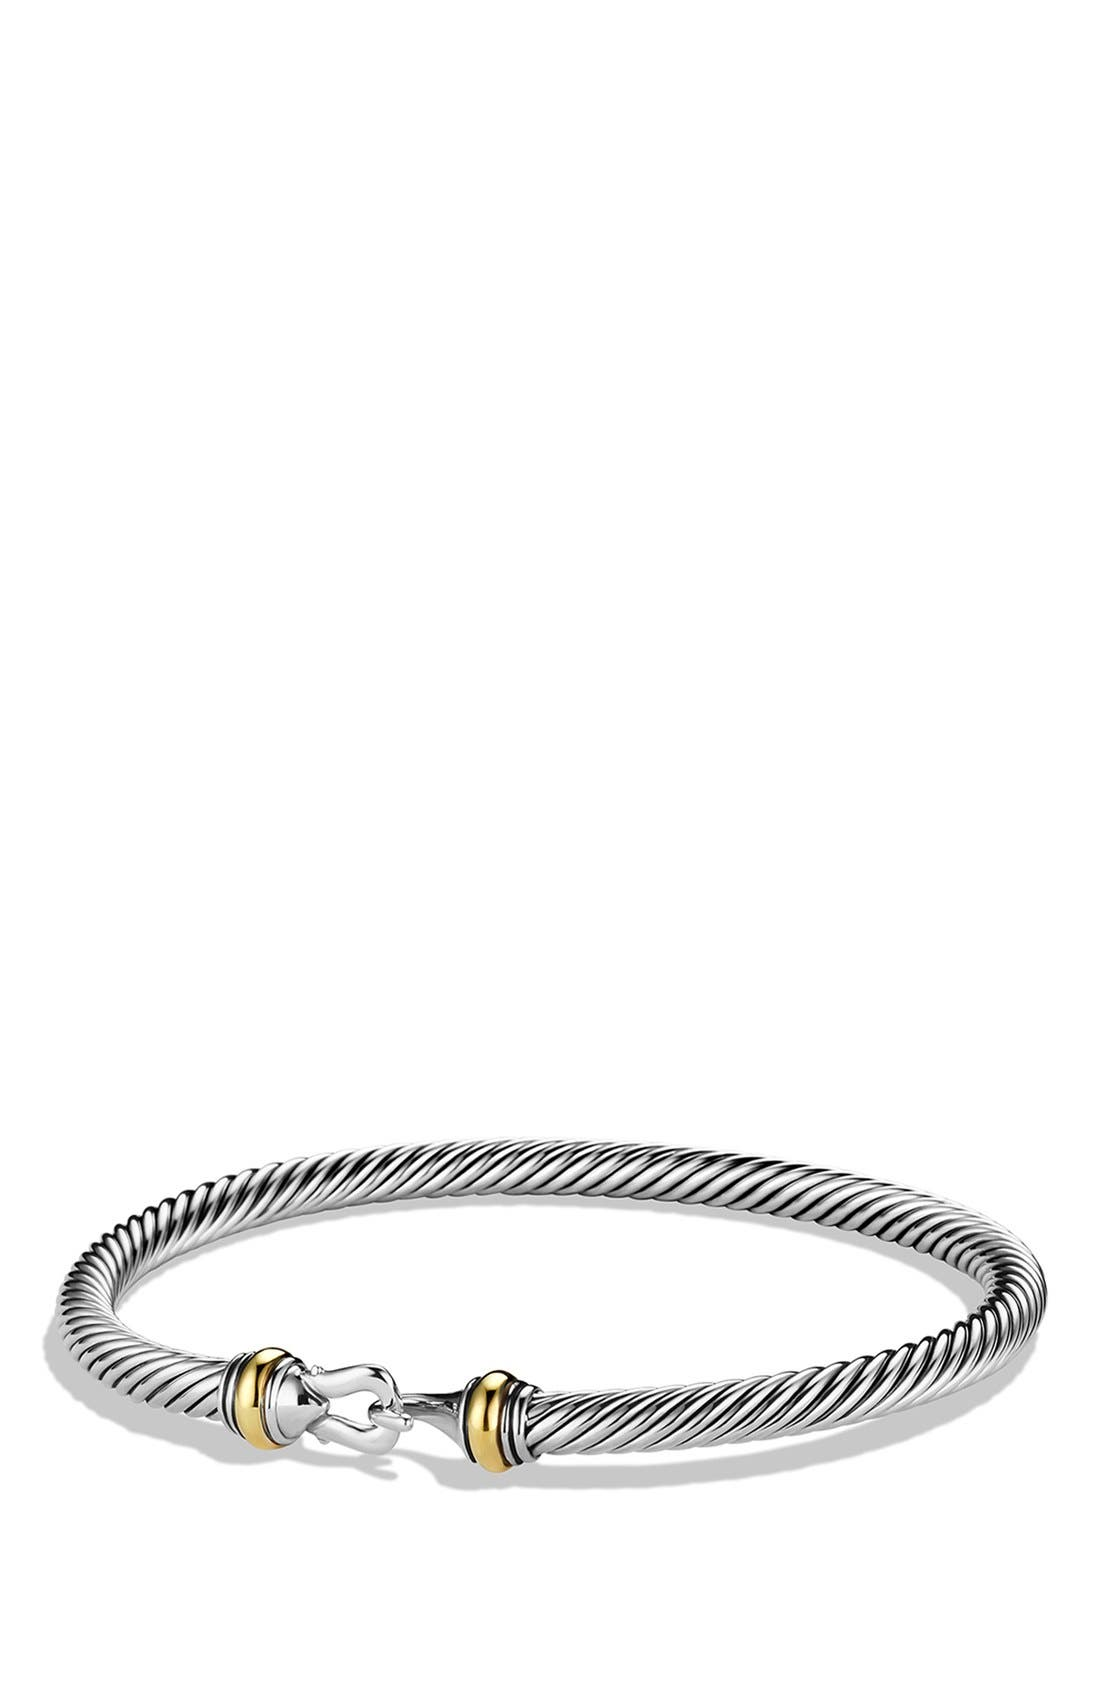 DAVID YURMAN Cable Buckle Bracelet with Gold, 4mm, Main, color, TWO TONE